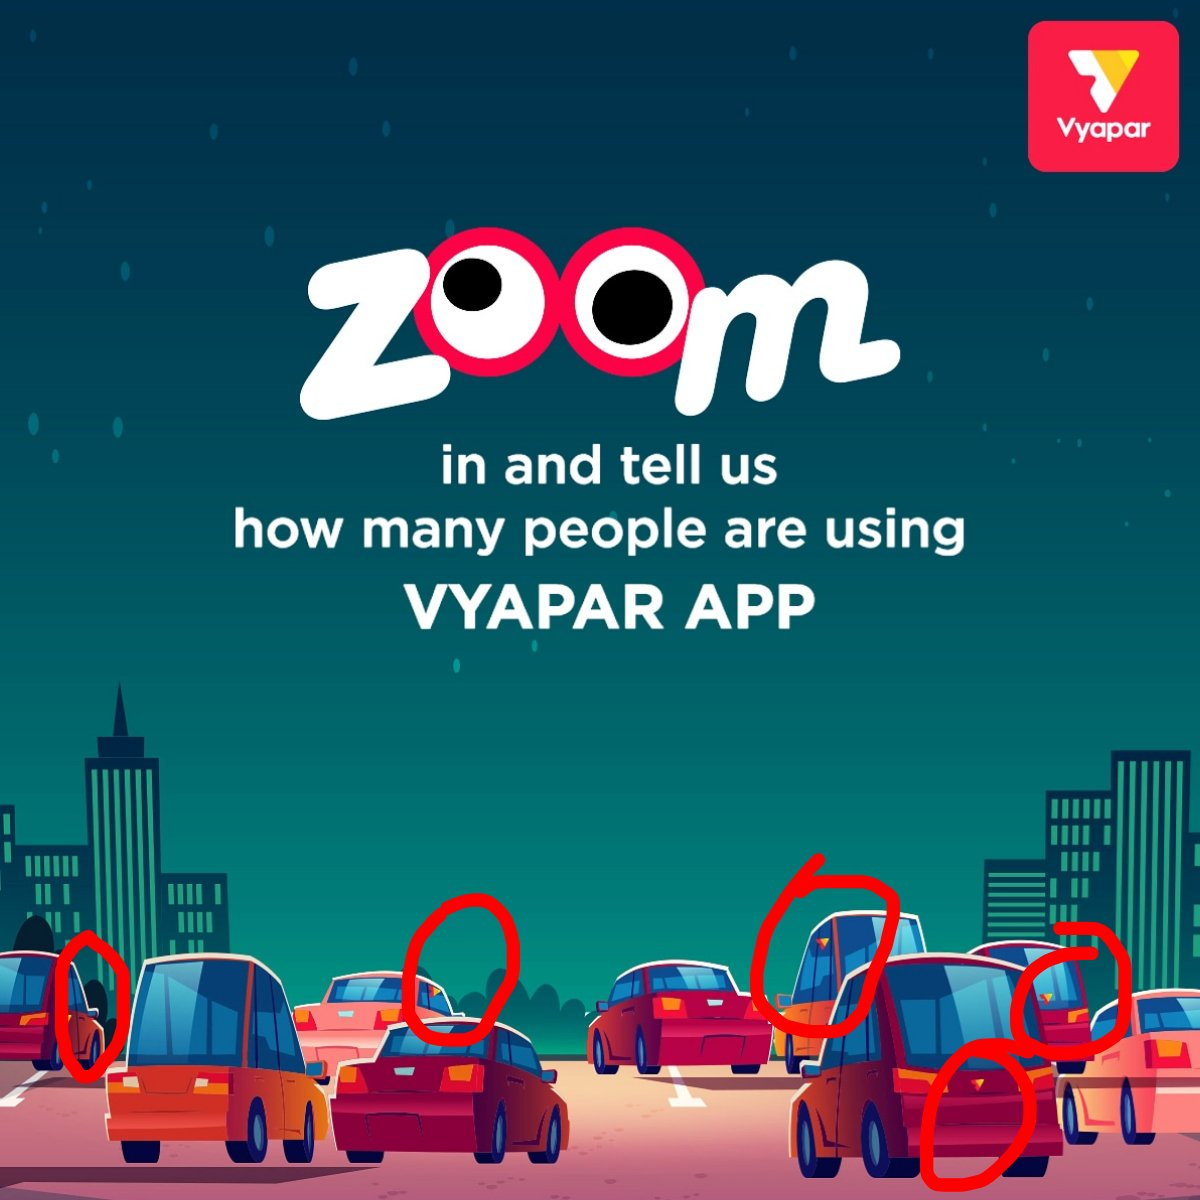 Vyapar On Twitter Contest Alert All You Have To Do Is 1 Zoom In And Find Out How Many Vyapar Logos Are There In The Image Comment Your Answer Below 2 Rt